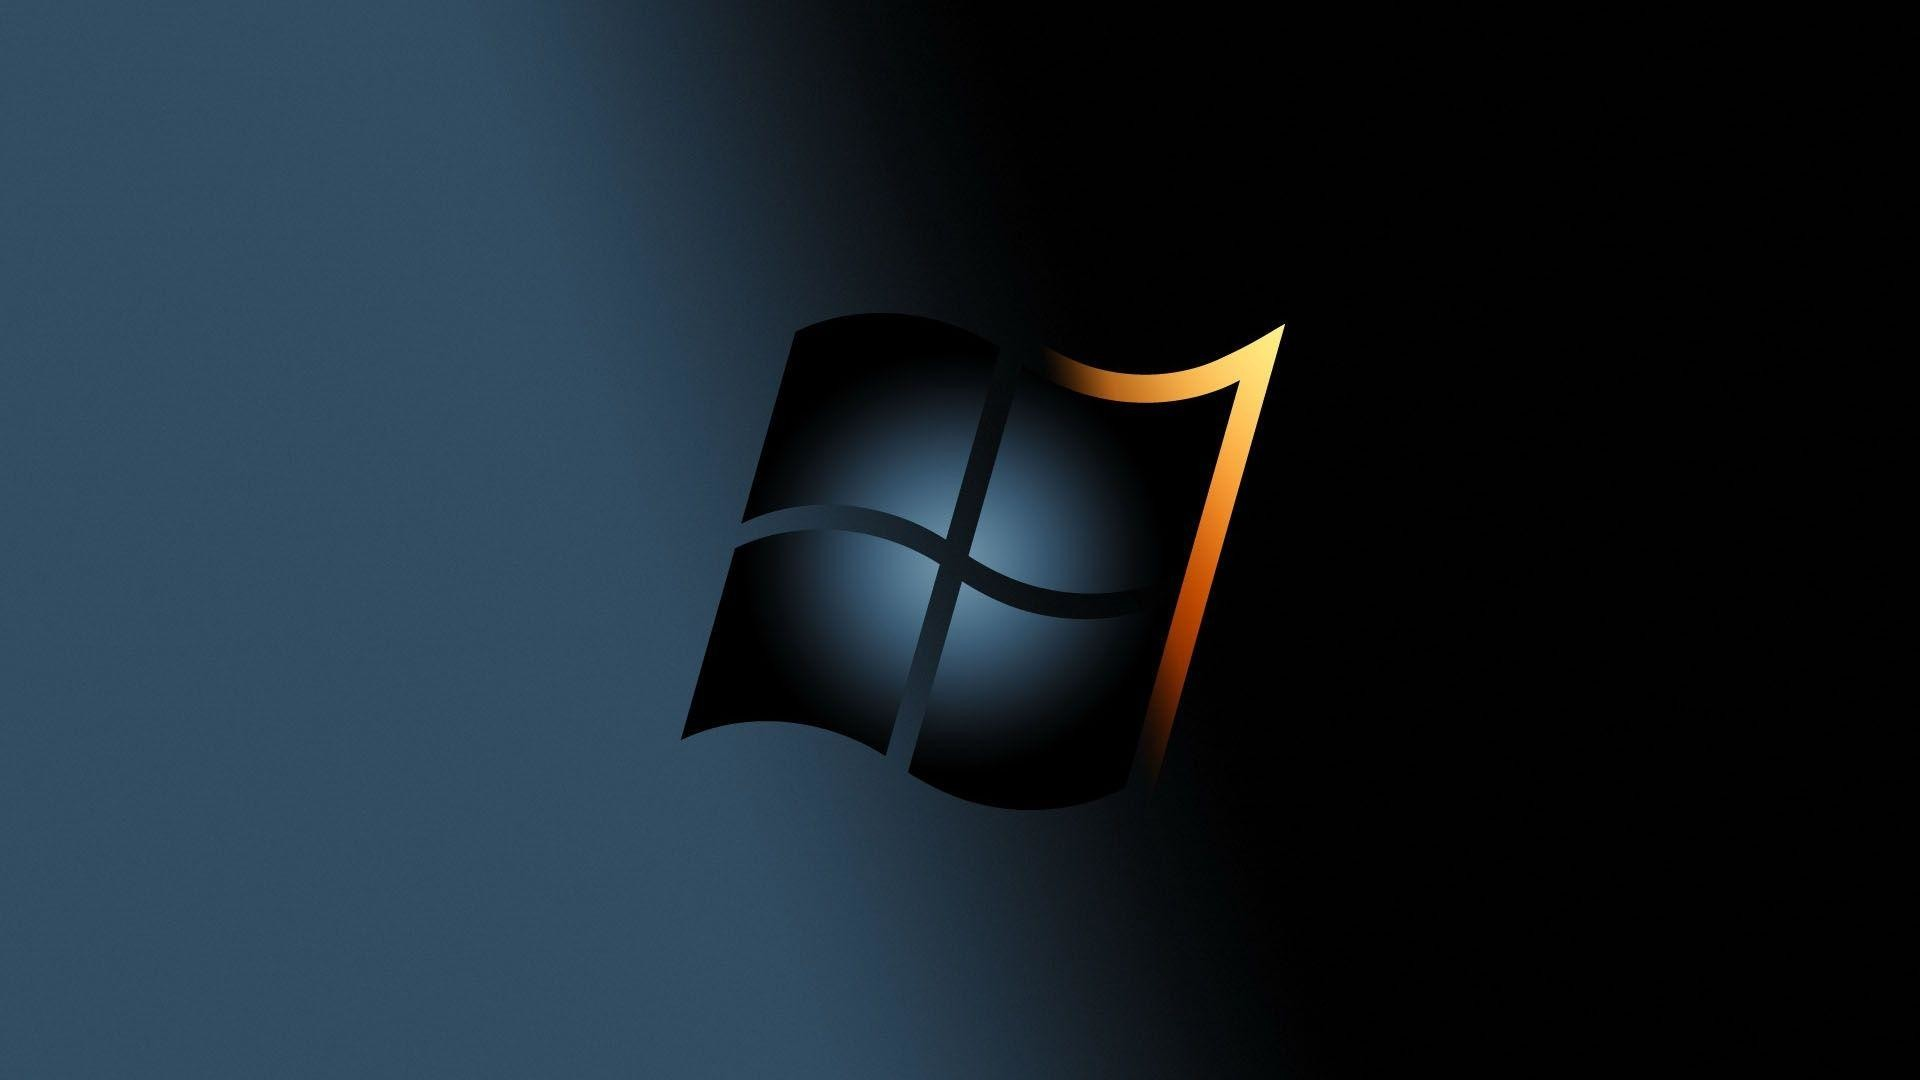 Windows 7 Hd Wallpapers 1080p 73 Pictures